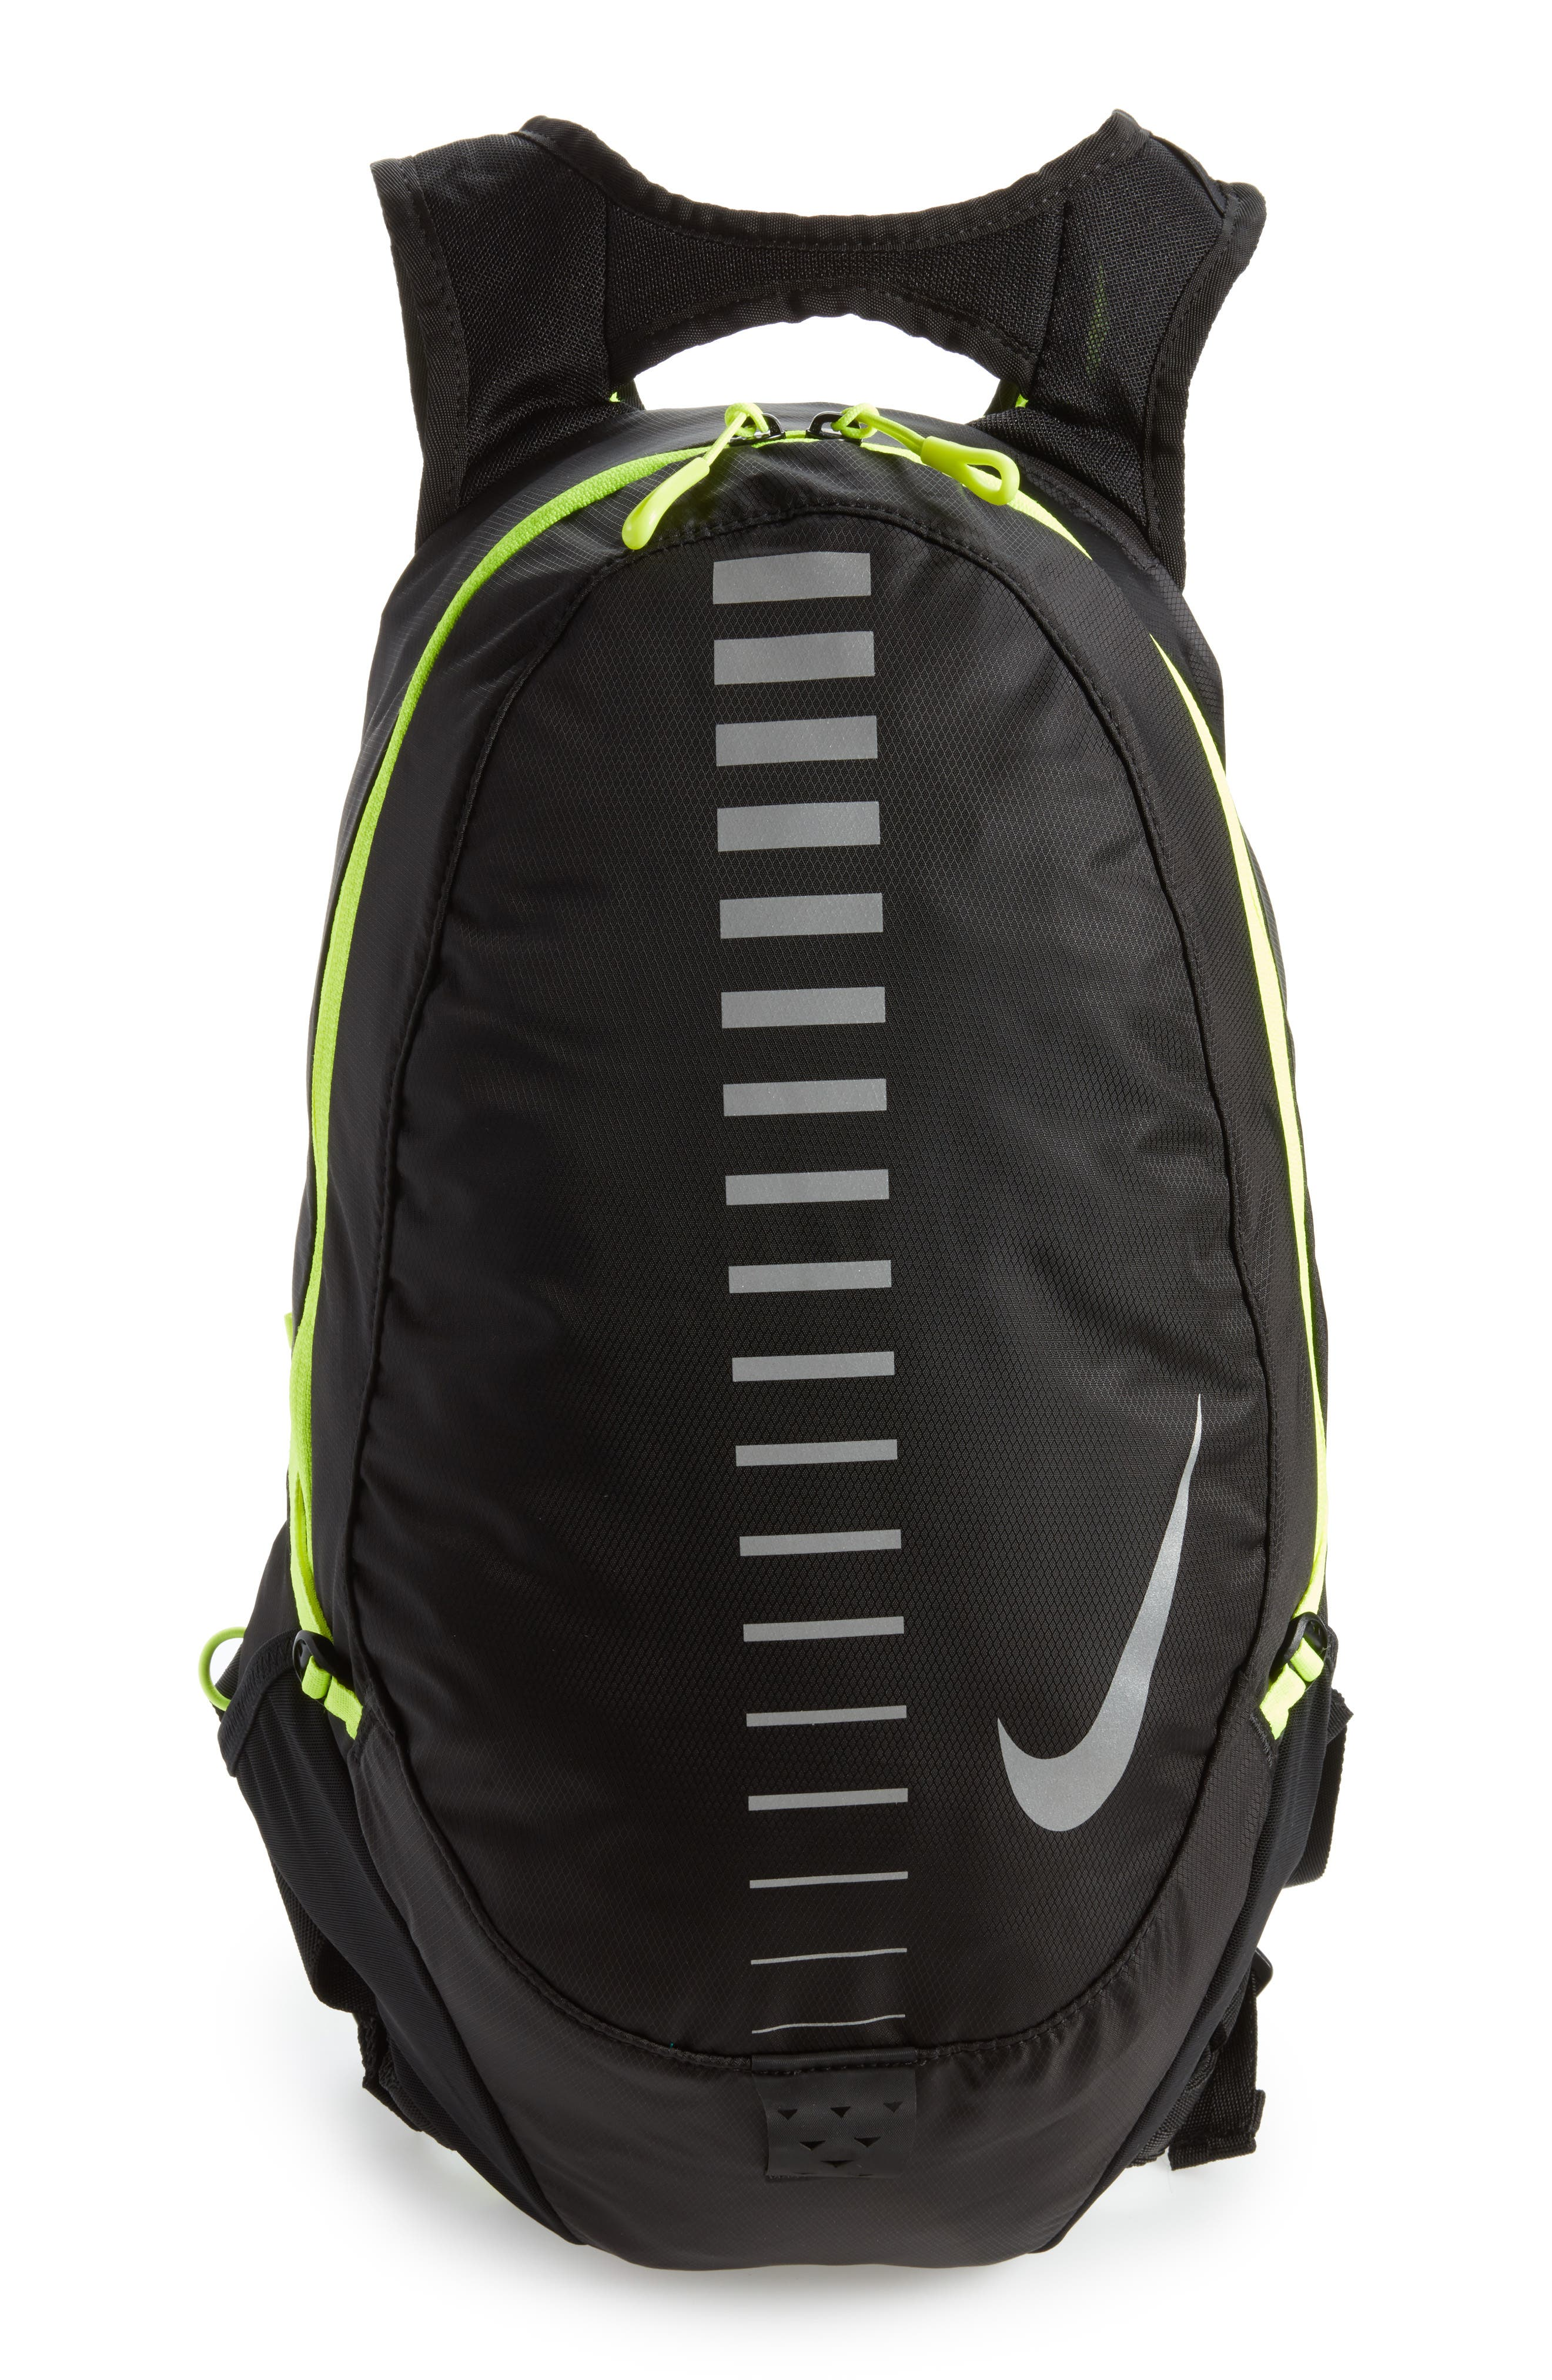 Run Commuter Backpack,                             Main thumbnail 1, color,                             Black/ Volt/ Silver